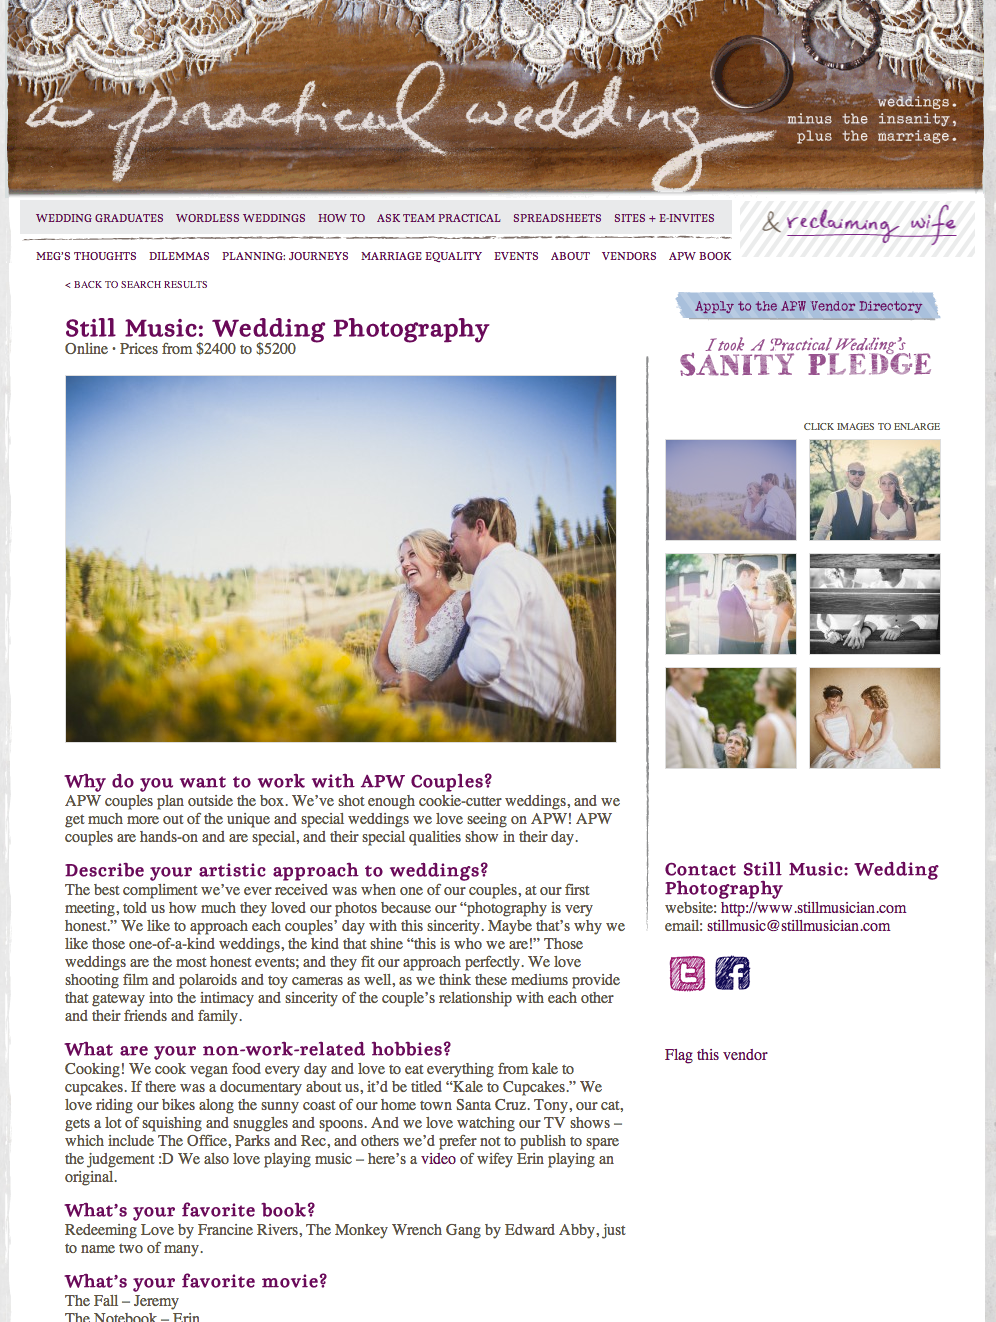 Still Music: Wedding Photography featured on A Practical